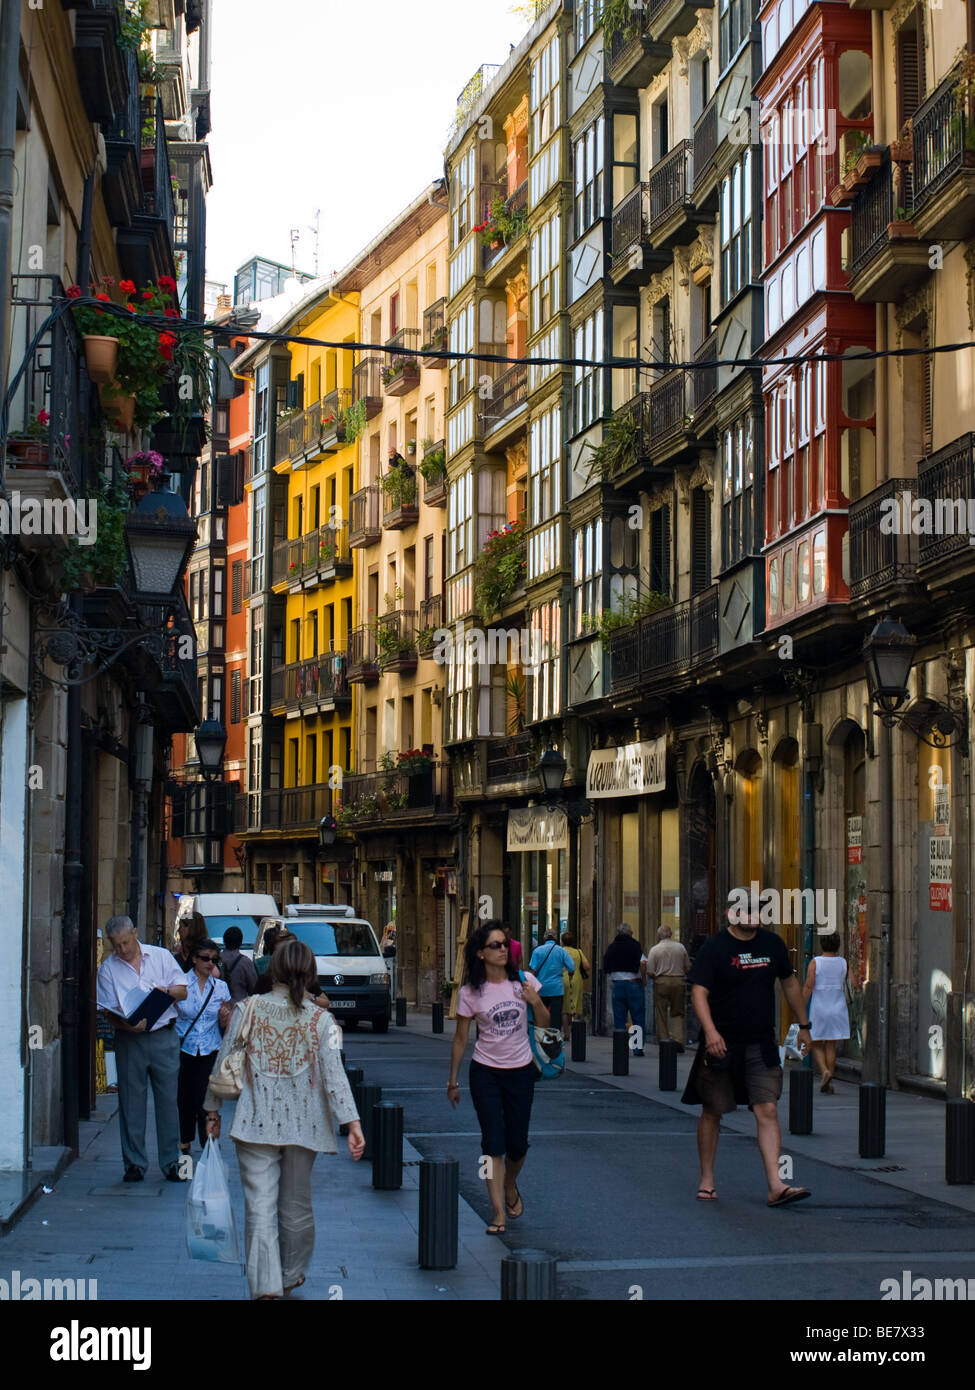 A street scene from the Casco Viejo (Old Town) district of Bilbao Stock Photo...